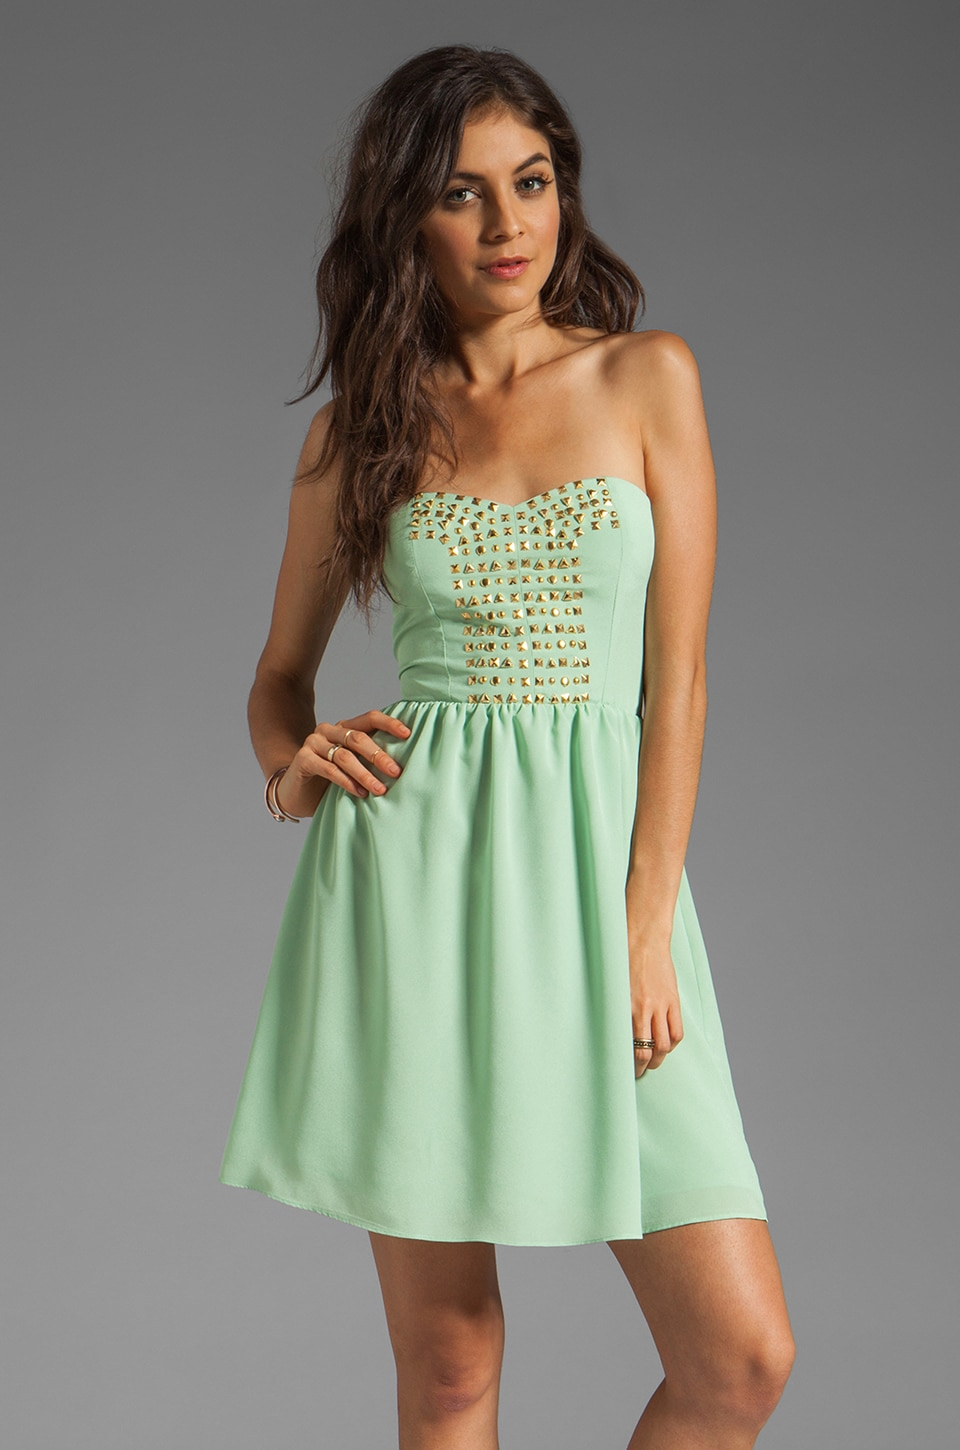 MM Couture by Miss Me Strapless Dress With Studs in Lime